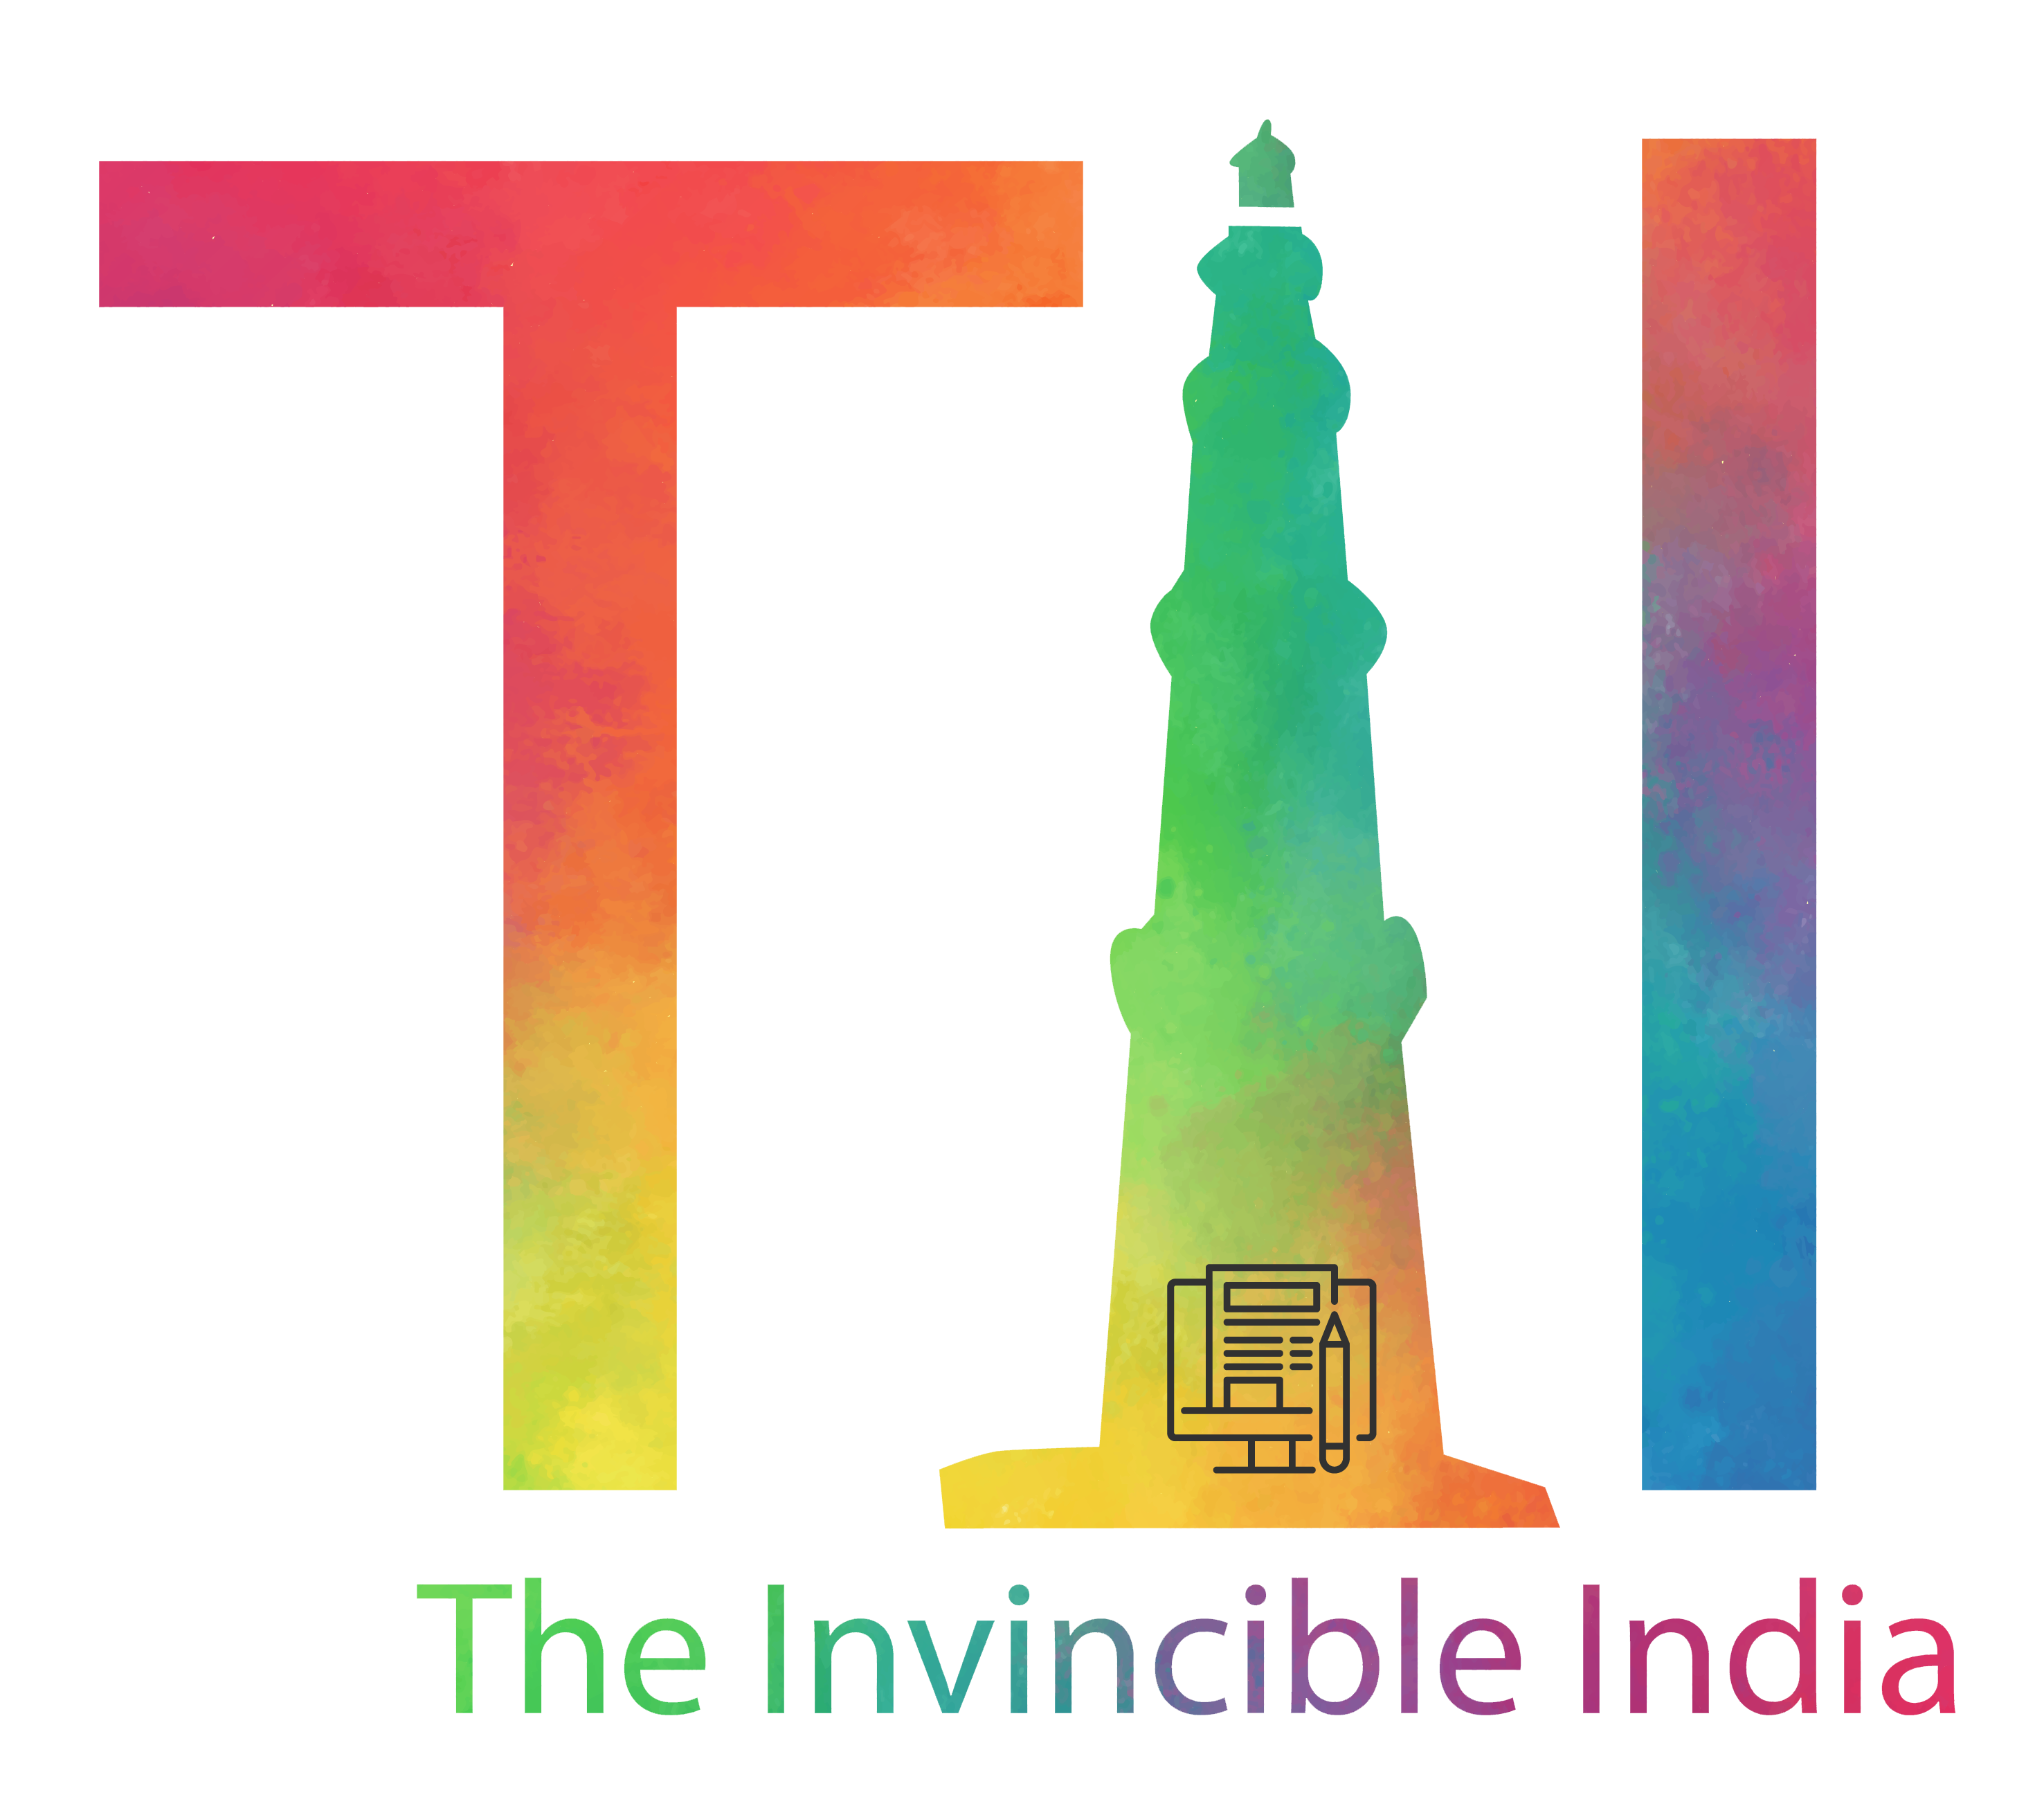 The Invincible India